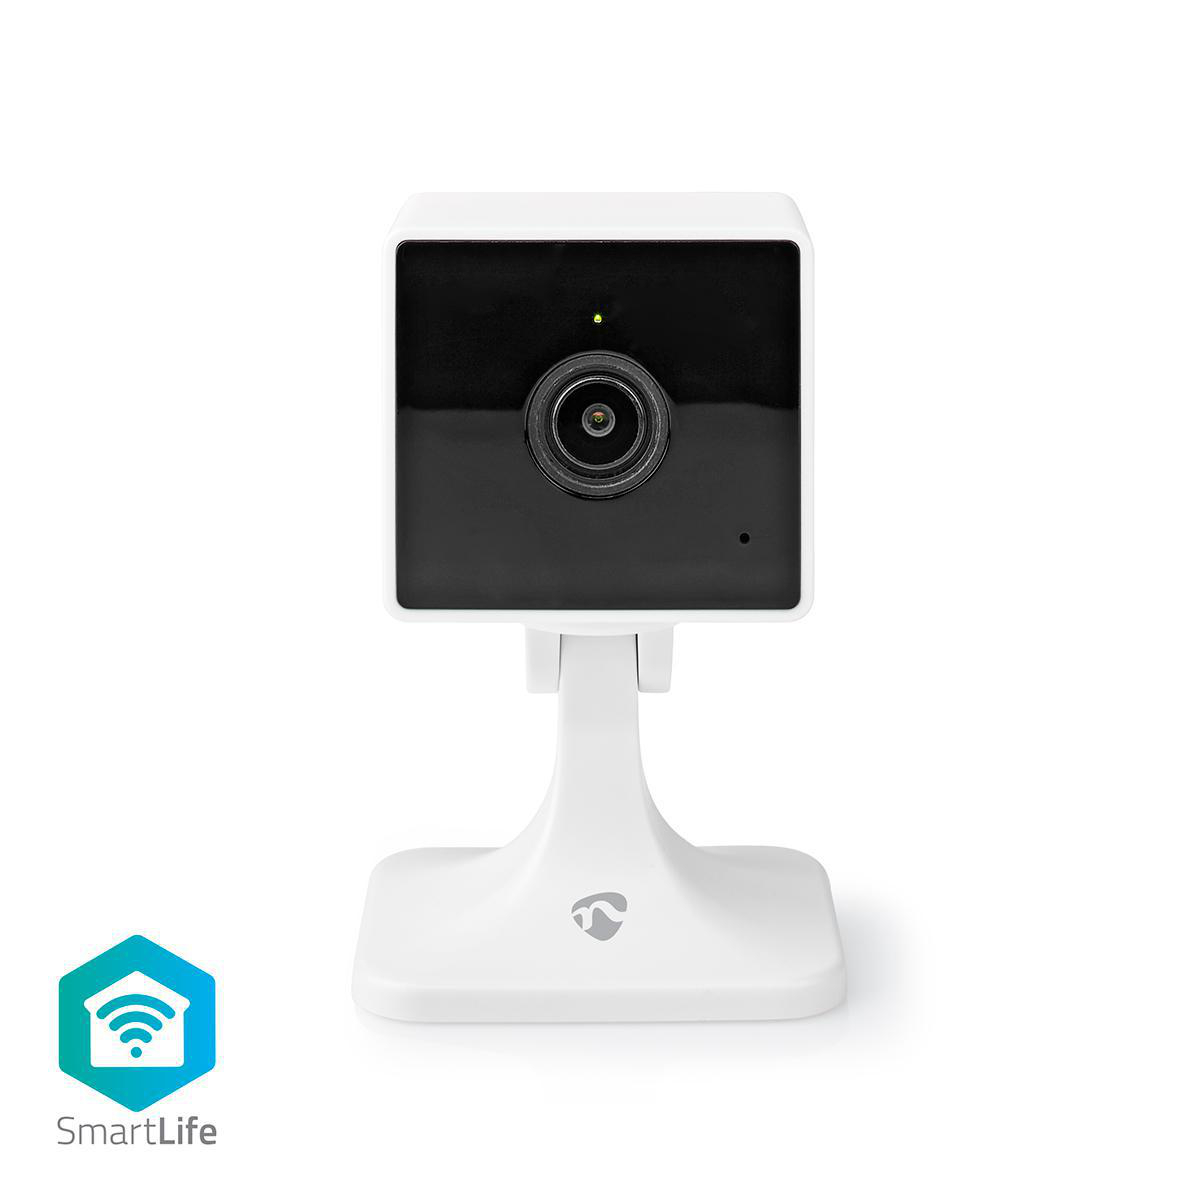 How to install... the SmartLife 'SquareFace' Indoor Camera